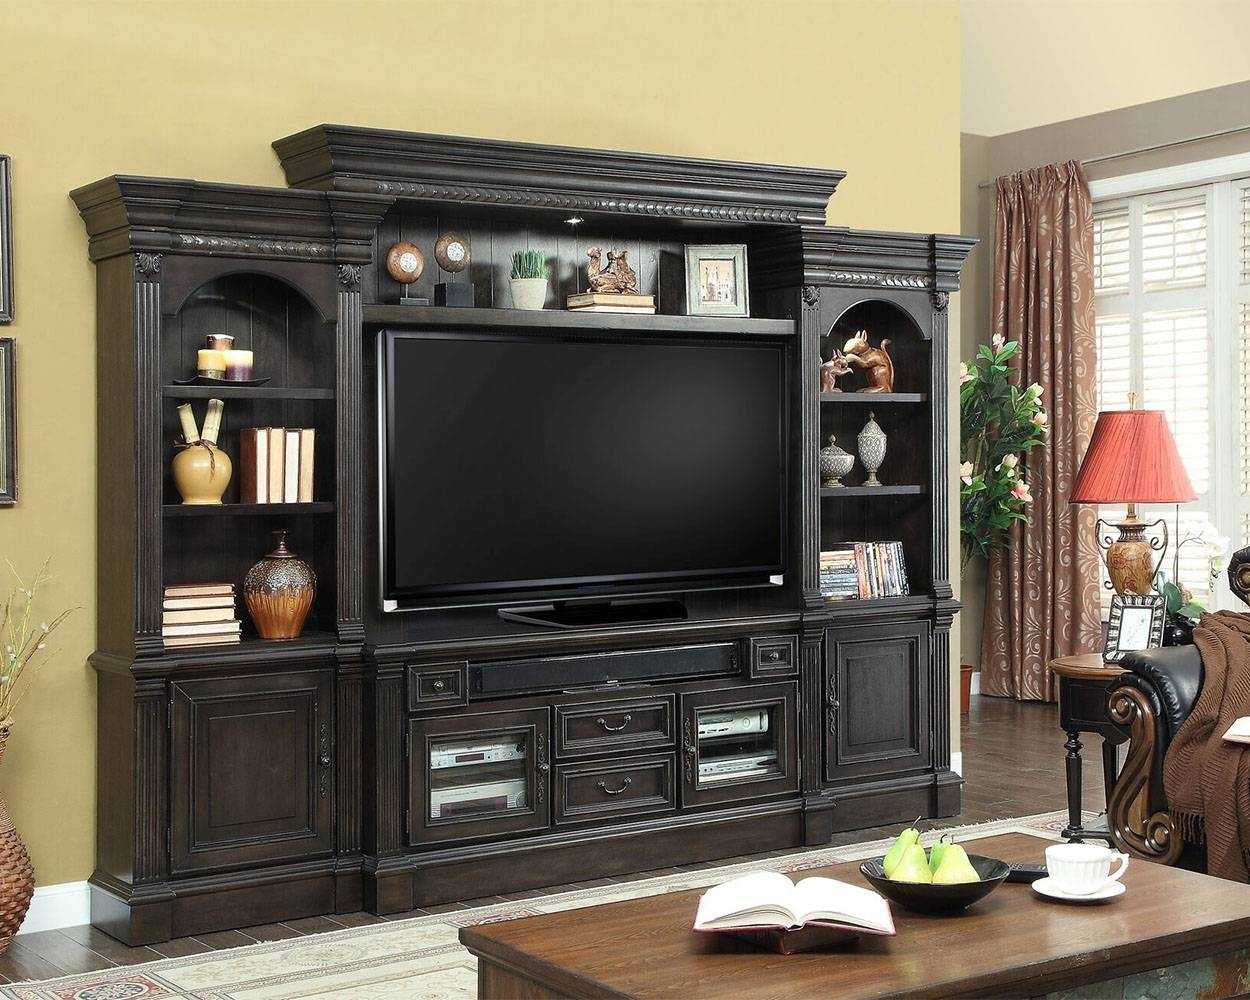 Home Entertainment Wall Units | Wall Entertainment Centers Regarding Tv Entertainment Units (View 11 of 15)